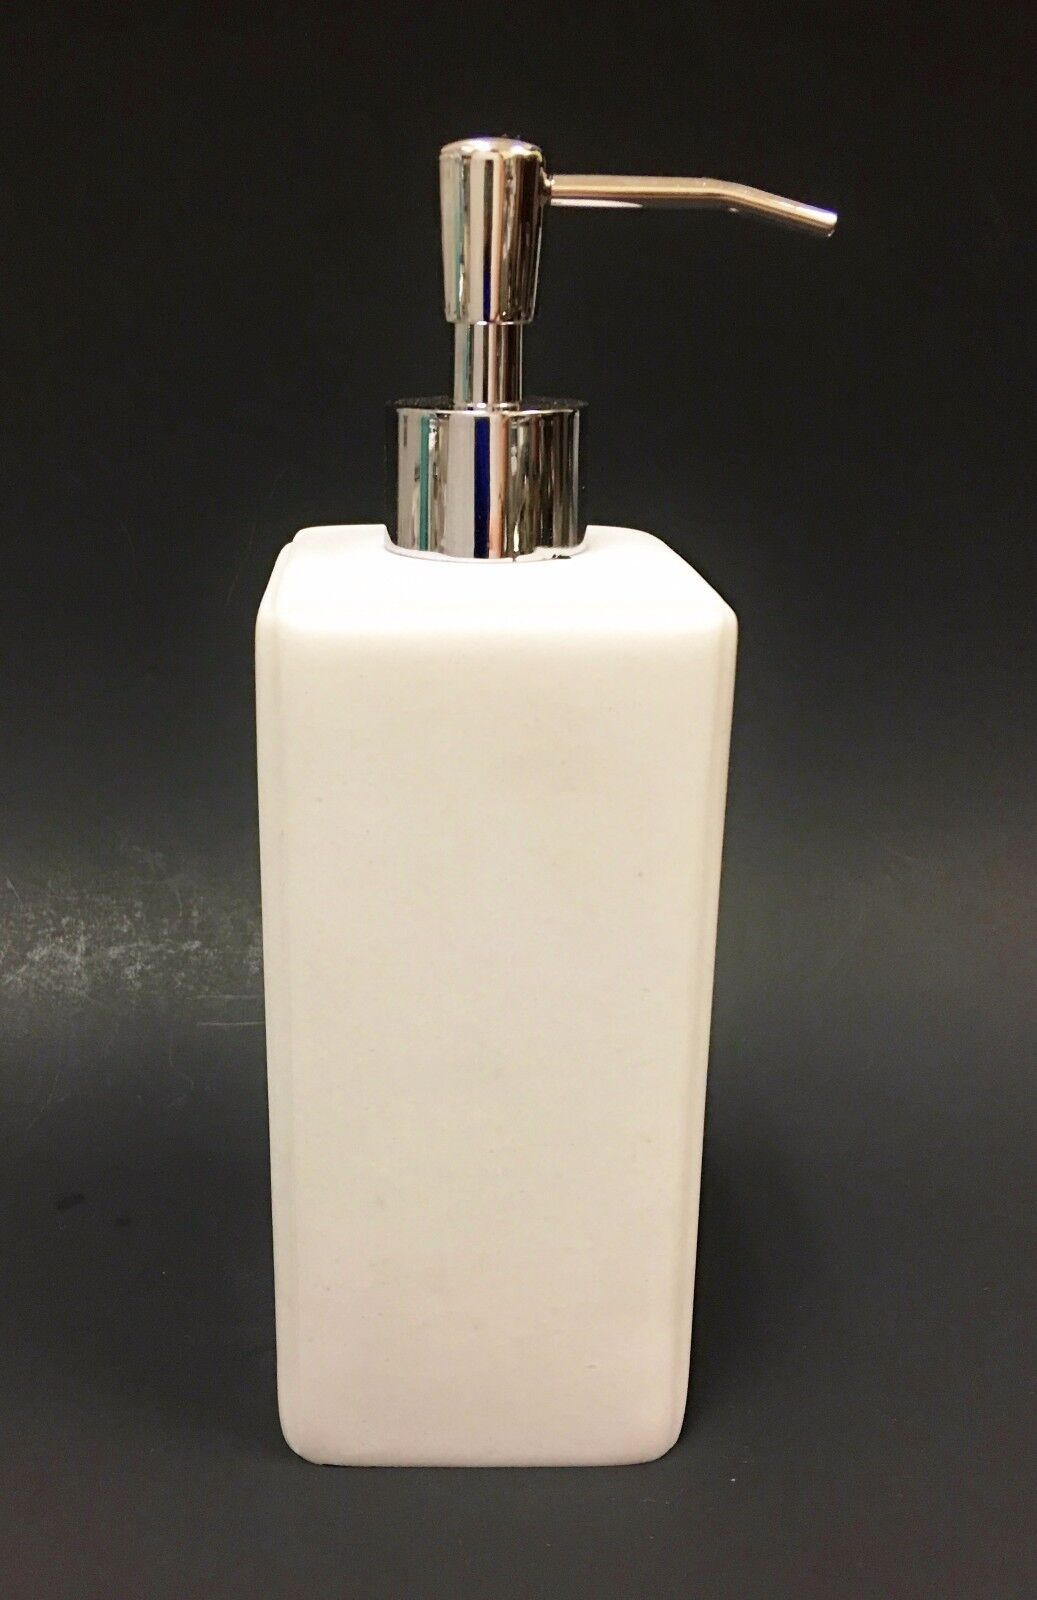 Dkny Bathroom Accessories Dkny White Resin Onyx Look Bathroomkitchen Soaplotion Dispenser